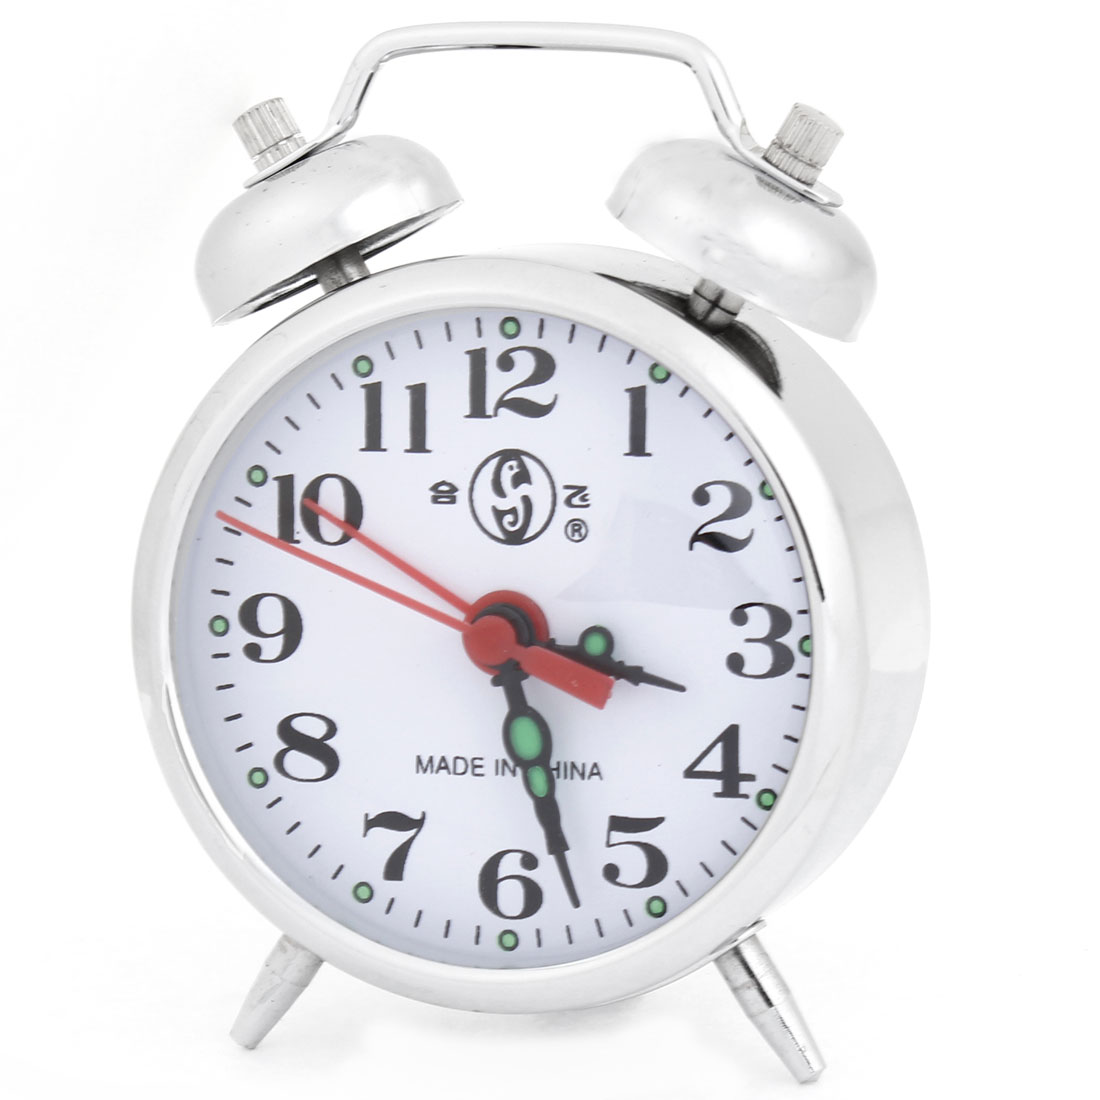 Stainless Steel Arabic Number Display 4 Hands Silver Tone Alarm Clock